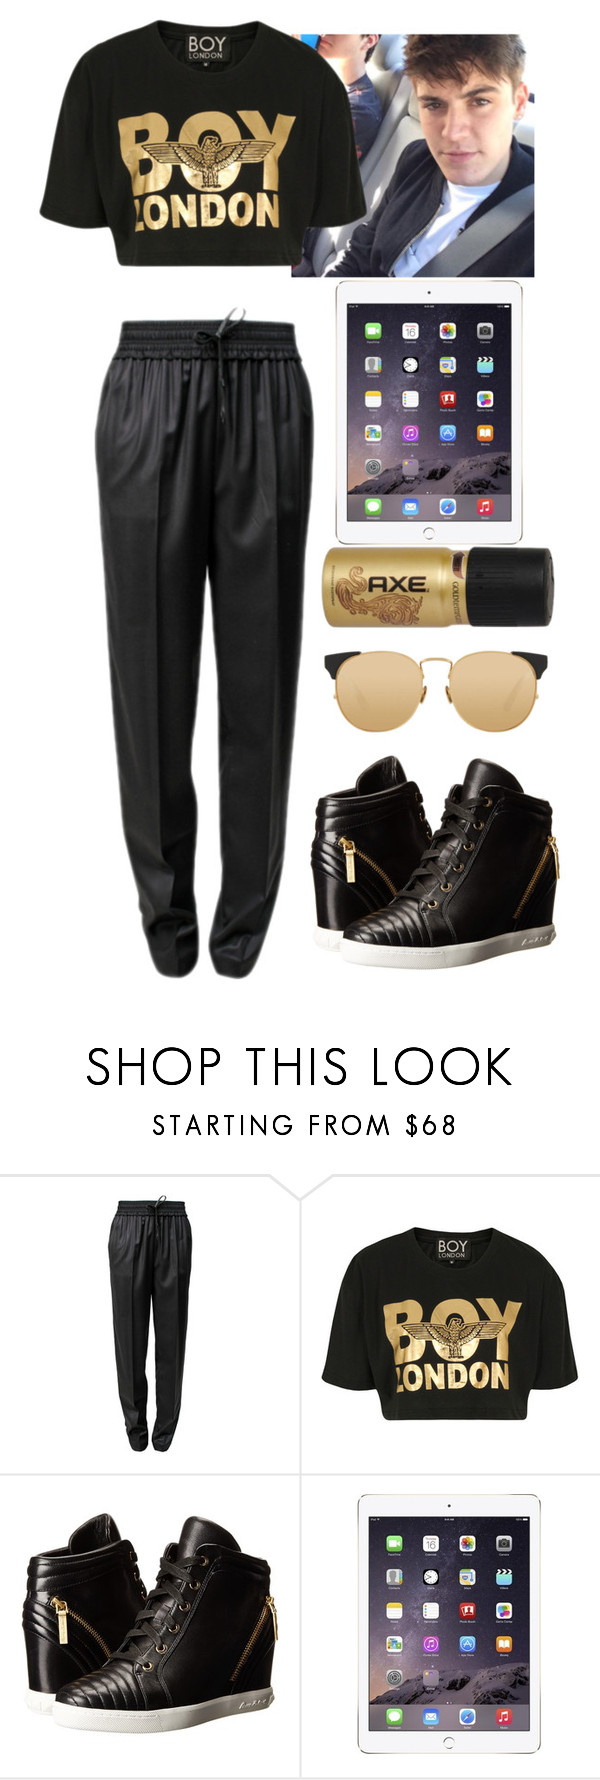 """road trip w/ Sammy"" by baeisme ❤ liked on Polyvore featuring Alexander Wang, BOY London, Pierre Balmain and Linda Farrow"